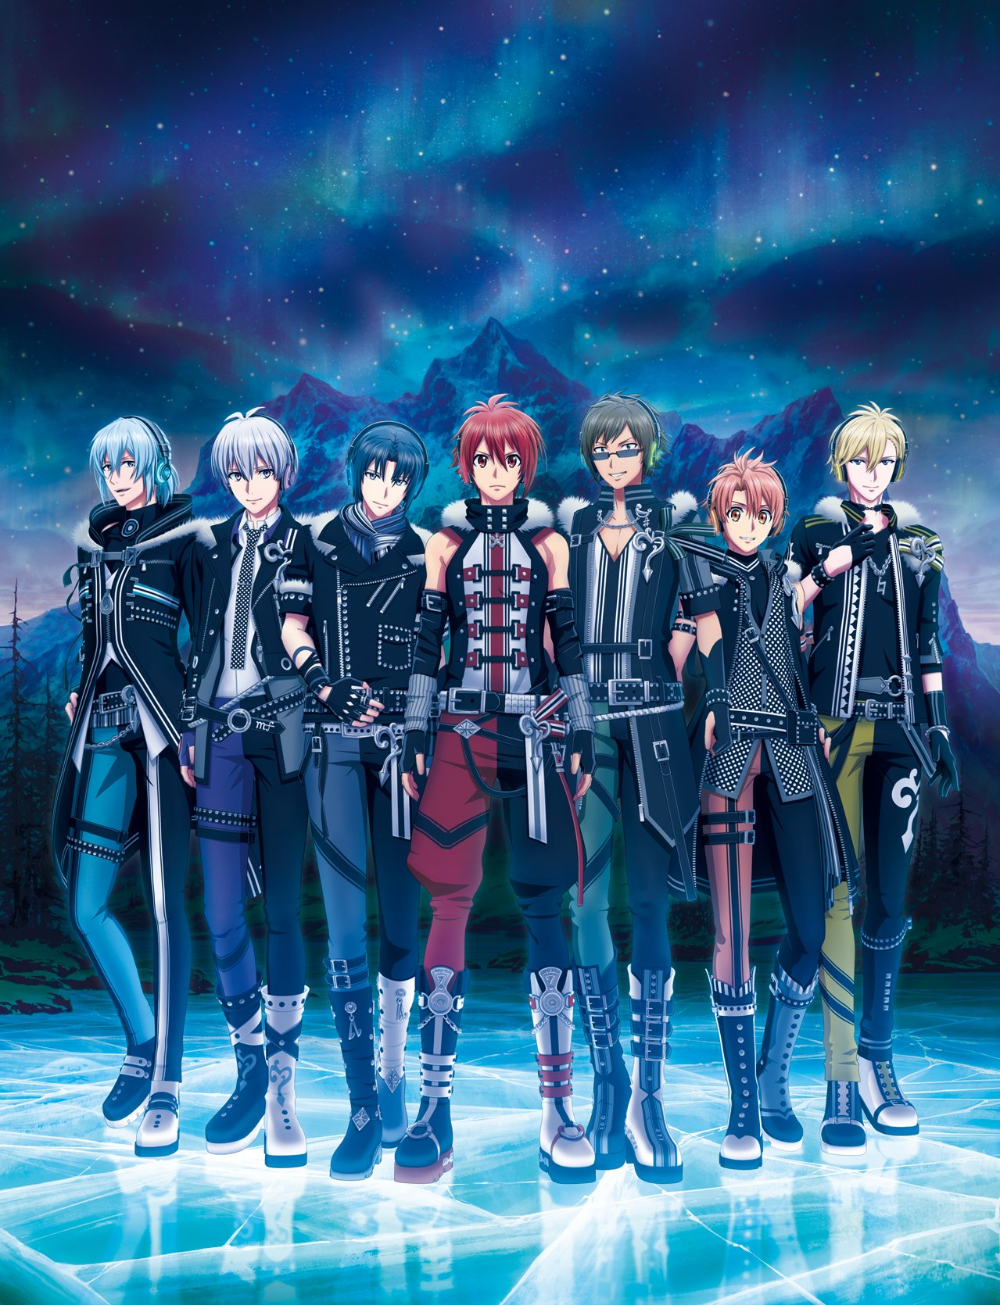 """IDOLiSH7 release full music video for """"Mr.AFFECTiON""""(画像あり"""